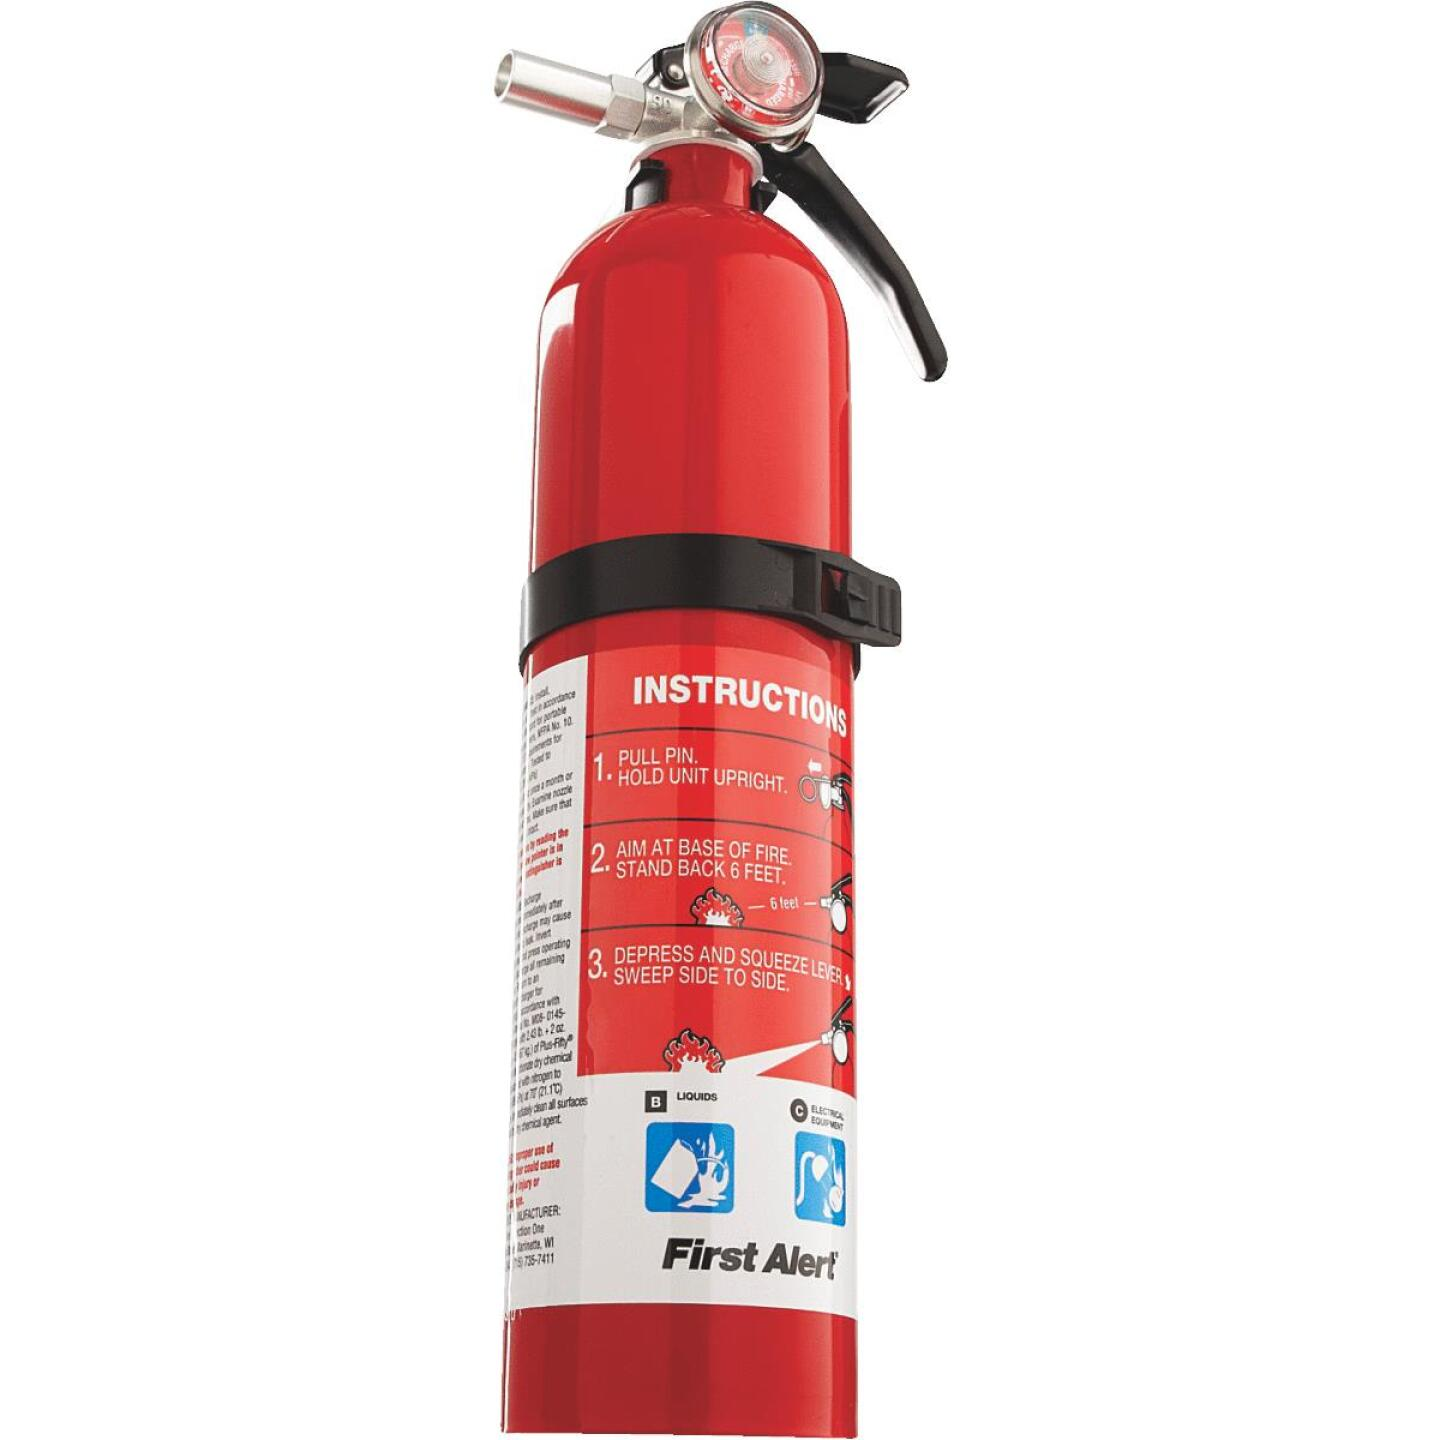 First Alert 10-B:C Rechargeable Garage Fire Extinguisher Image 4